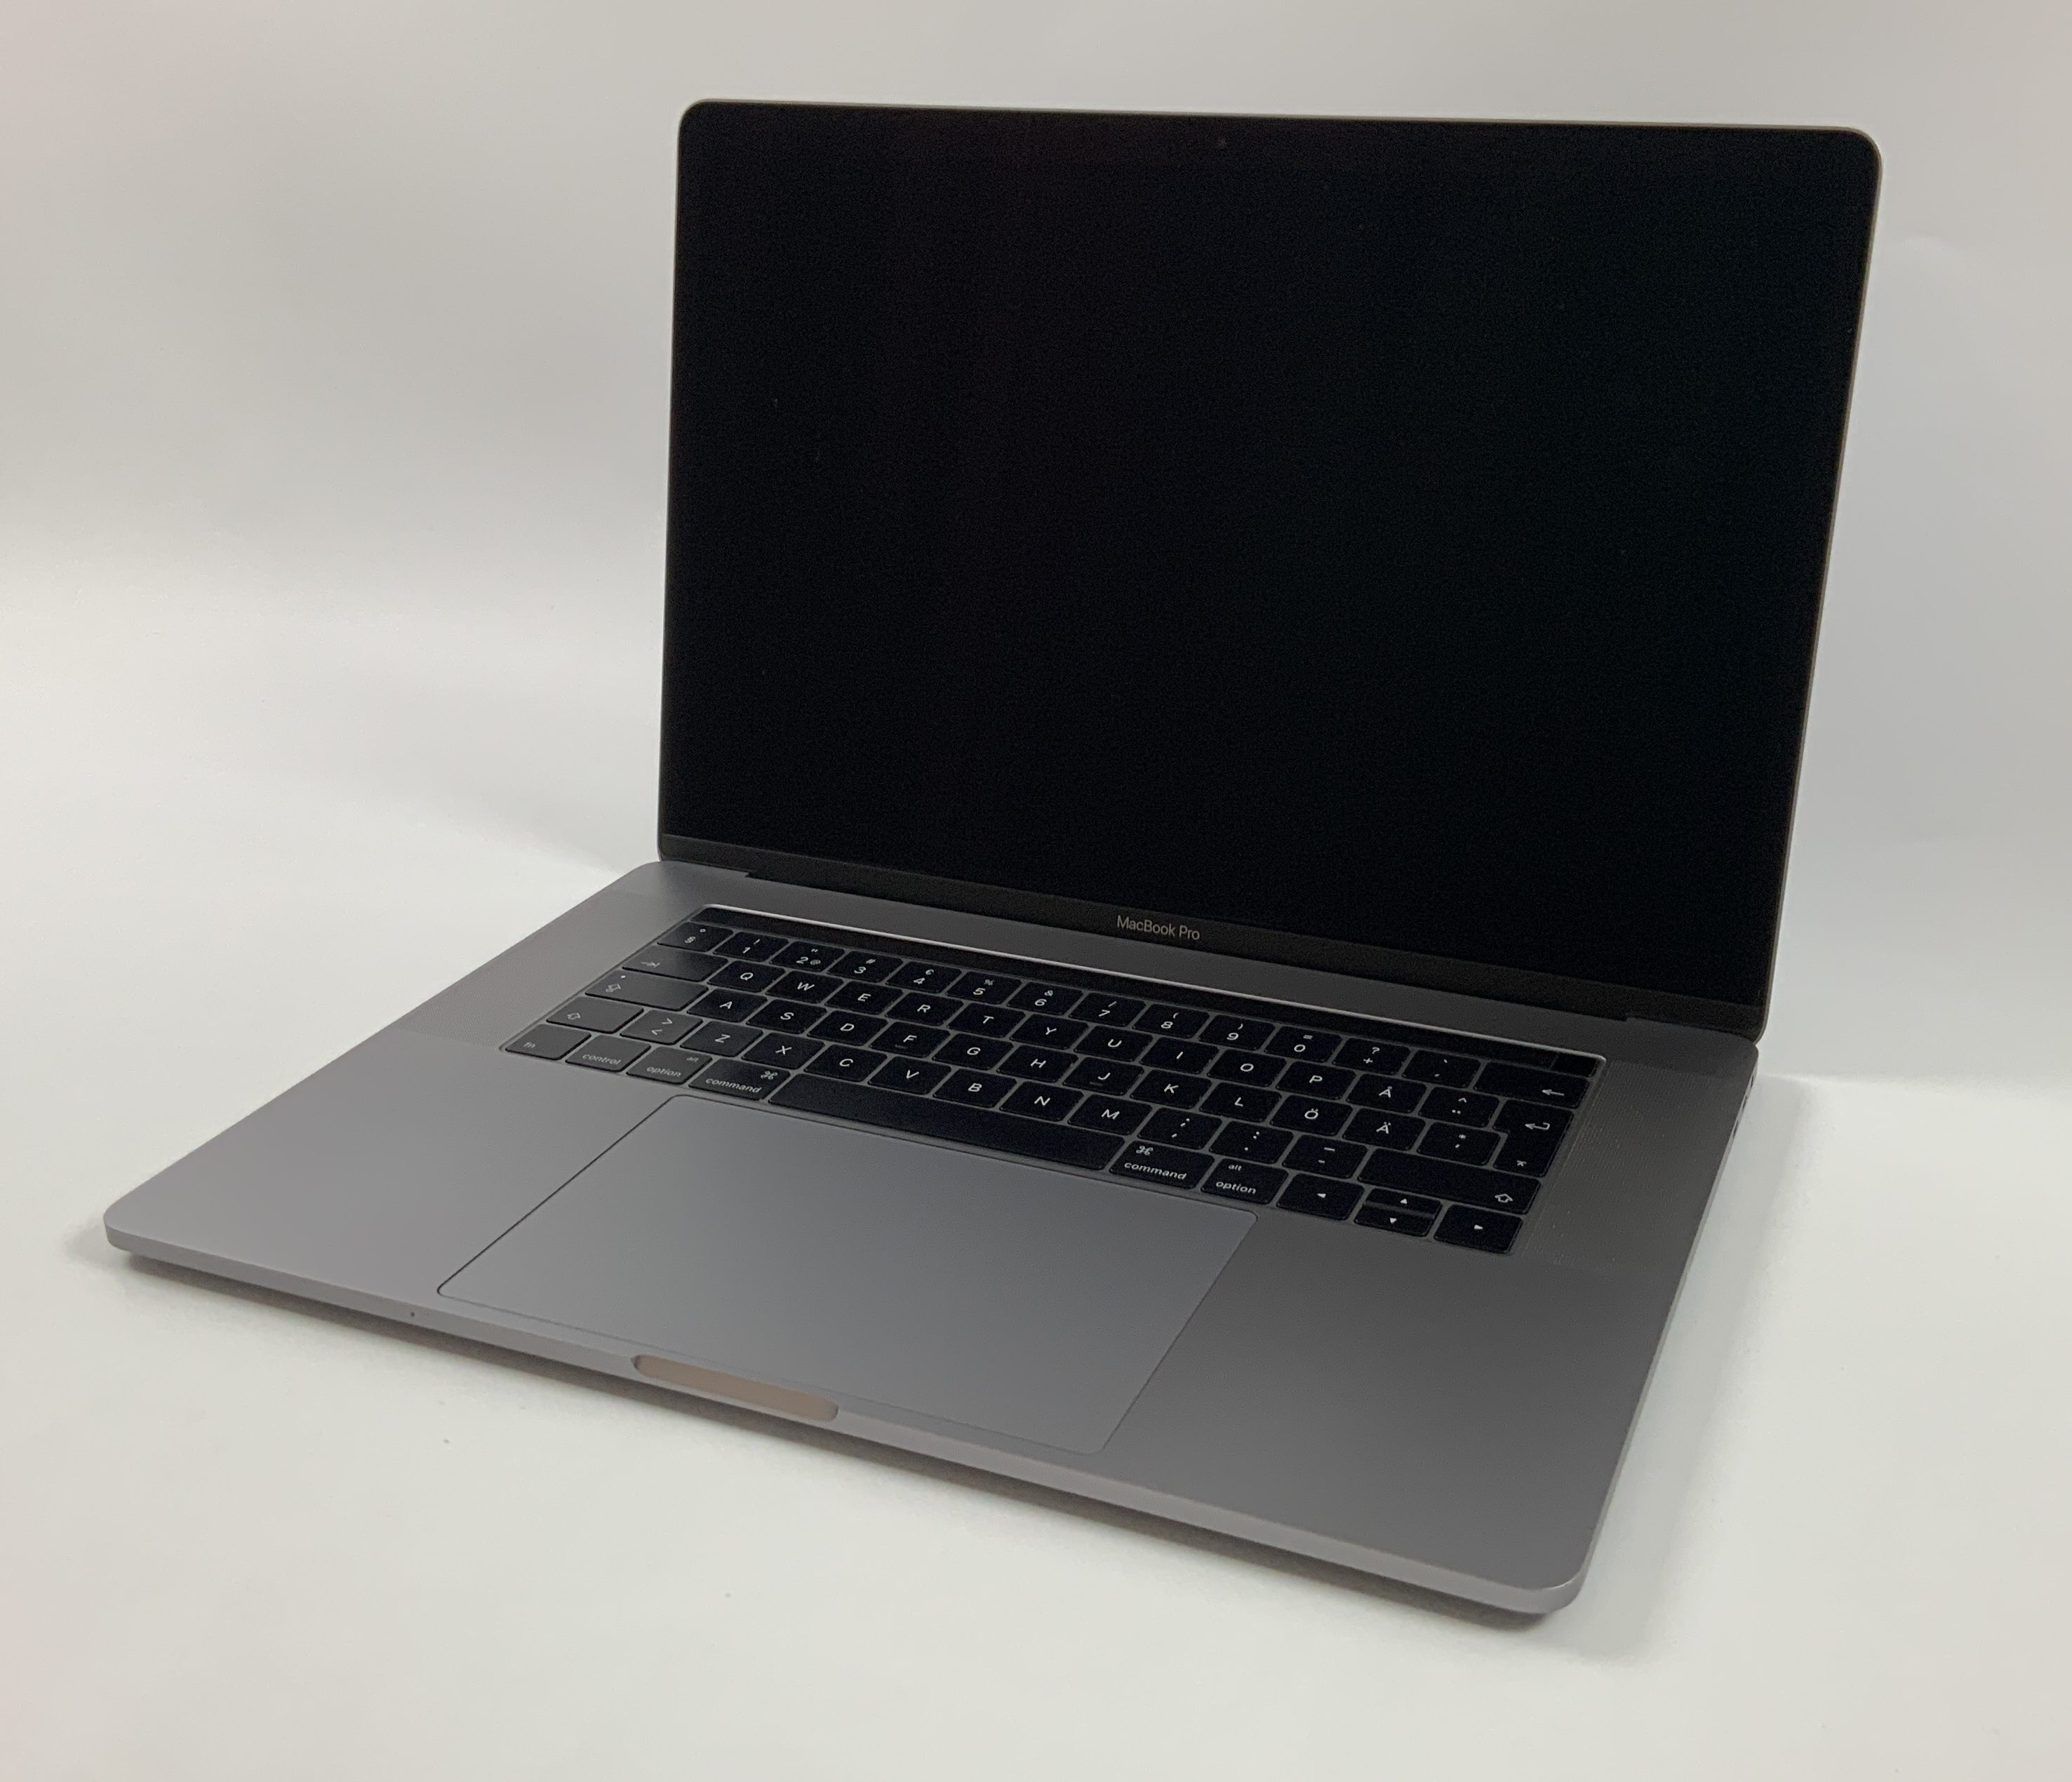 "MacBook Pro 15"" Touch Bar Late 2016 (Intel Quad-Core i7 2.6 GHz 16 GB RAM 512 GB SSD), Space Gray, Intel Quad-Core i7 2.6 GHz, 16 GB RAM, 512 GB SSD, Bild 1"